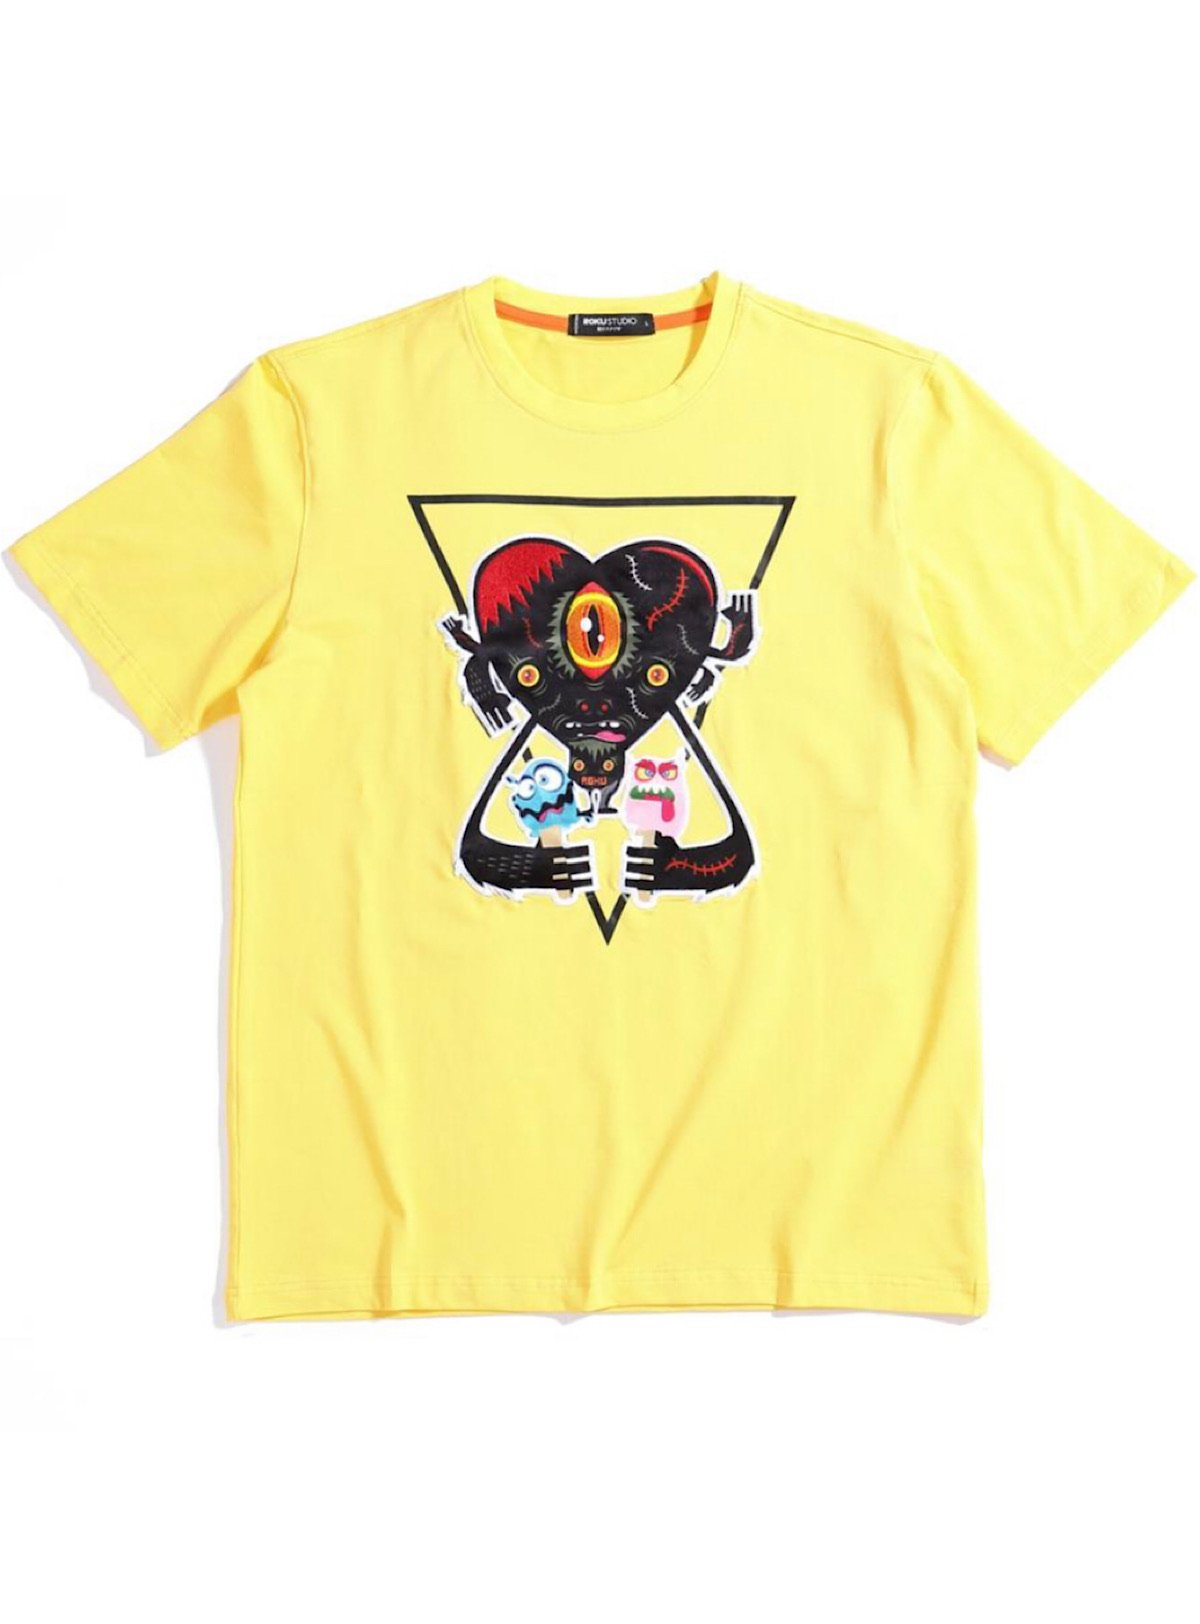 Roku Studio T-Shirt - Heart - Yellow - RK1480001